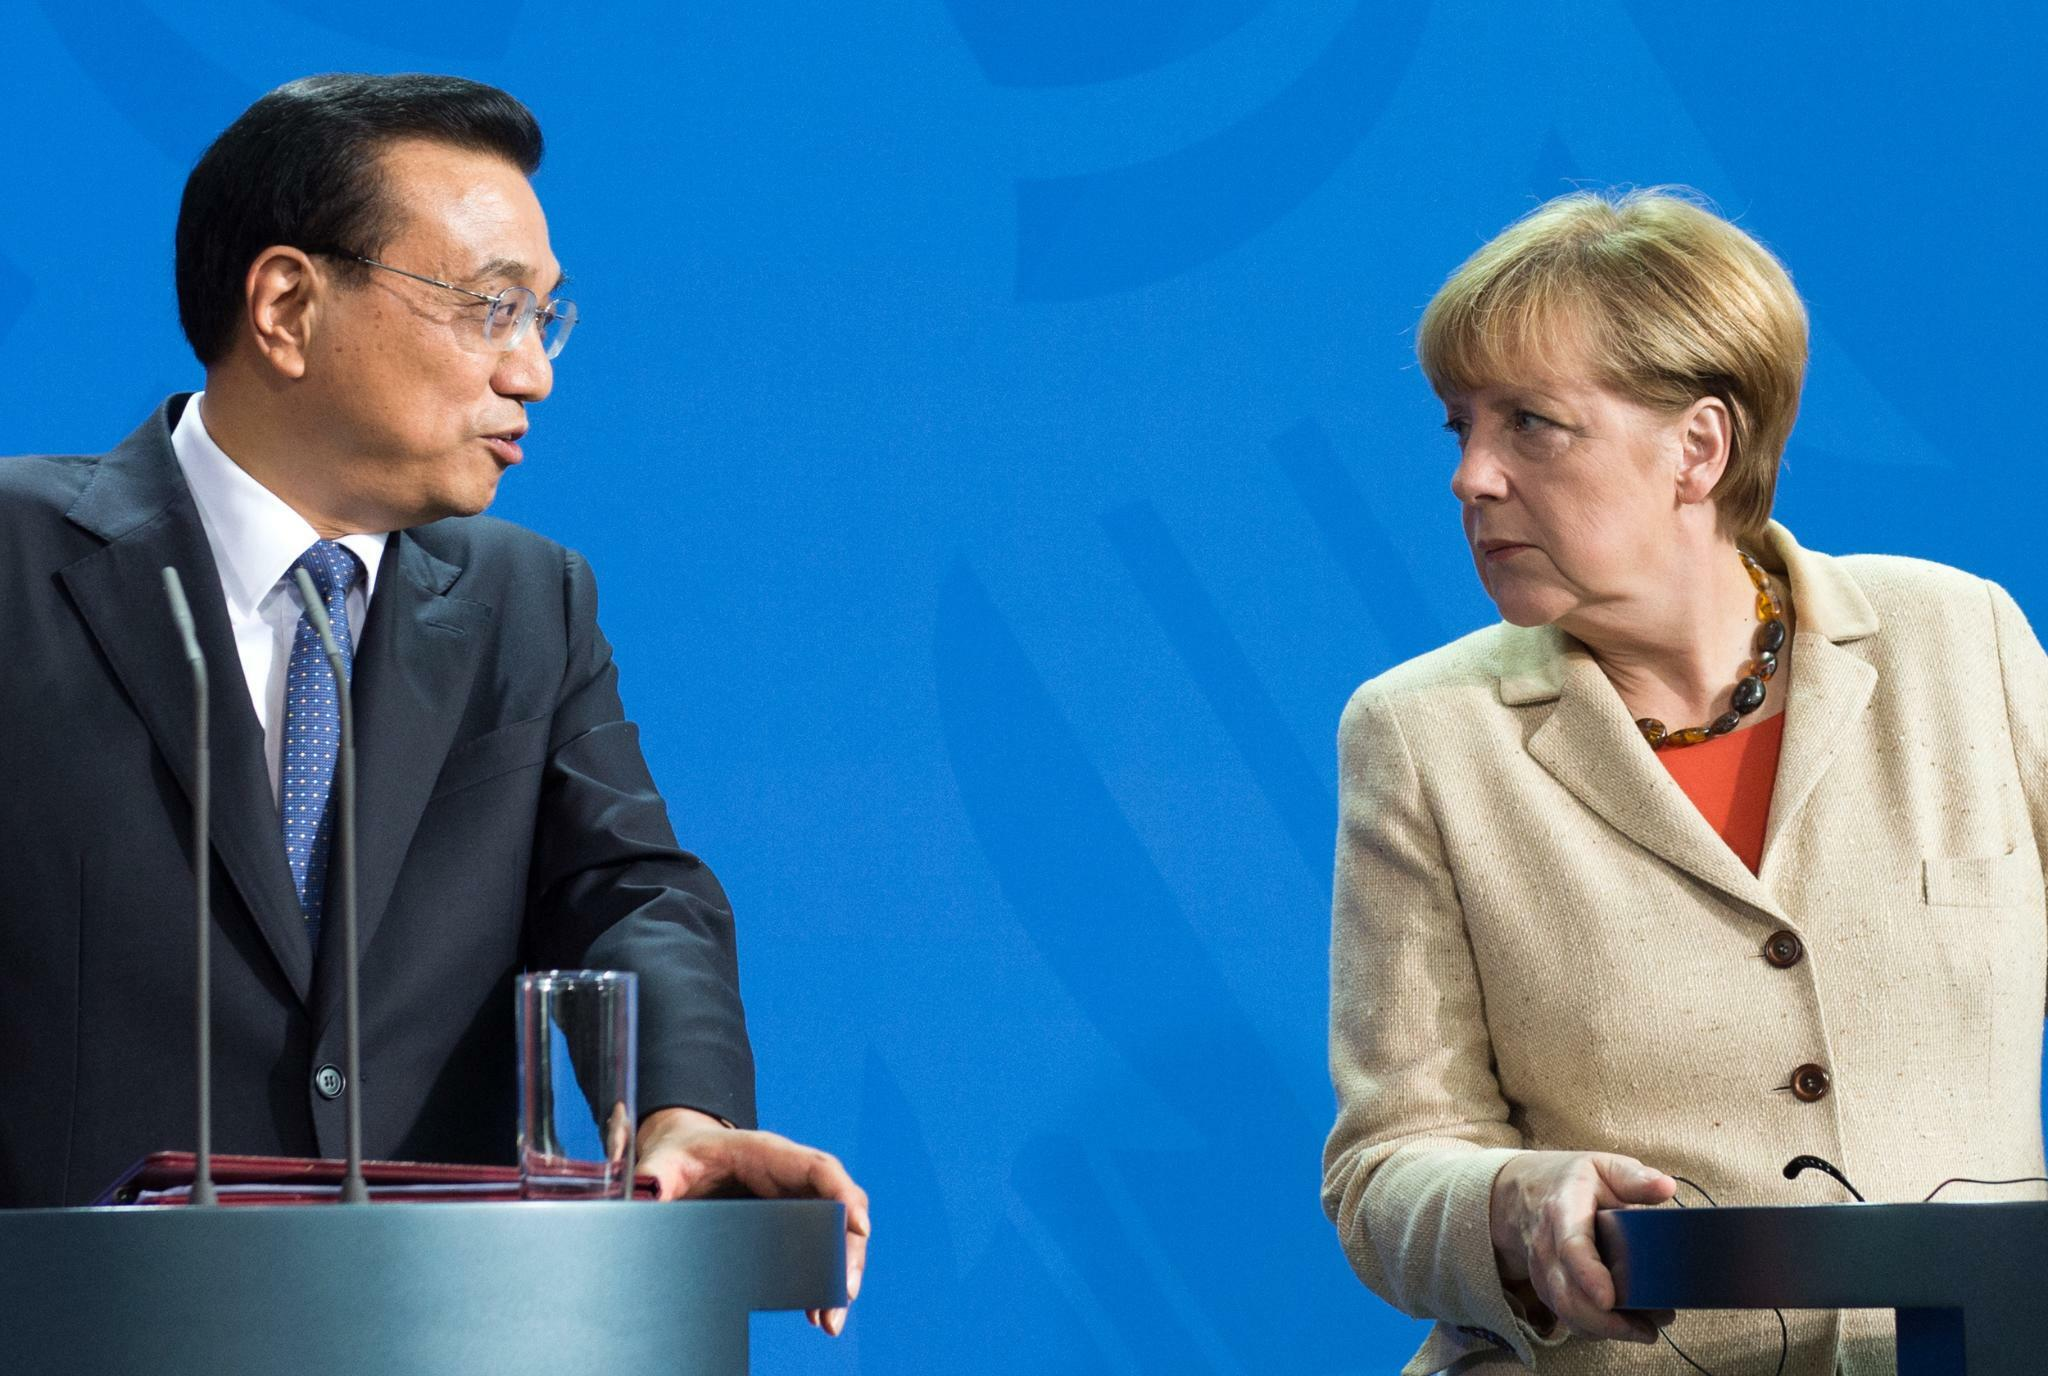 International | Merkel trifft Chinas Premier Li - Abgrenzung von Trump?